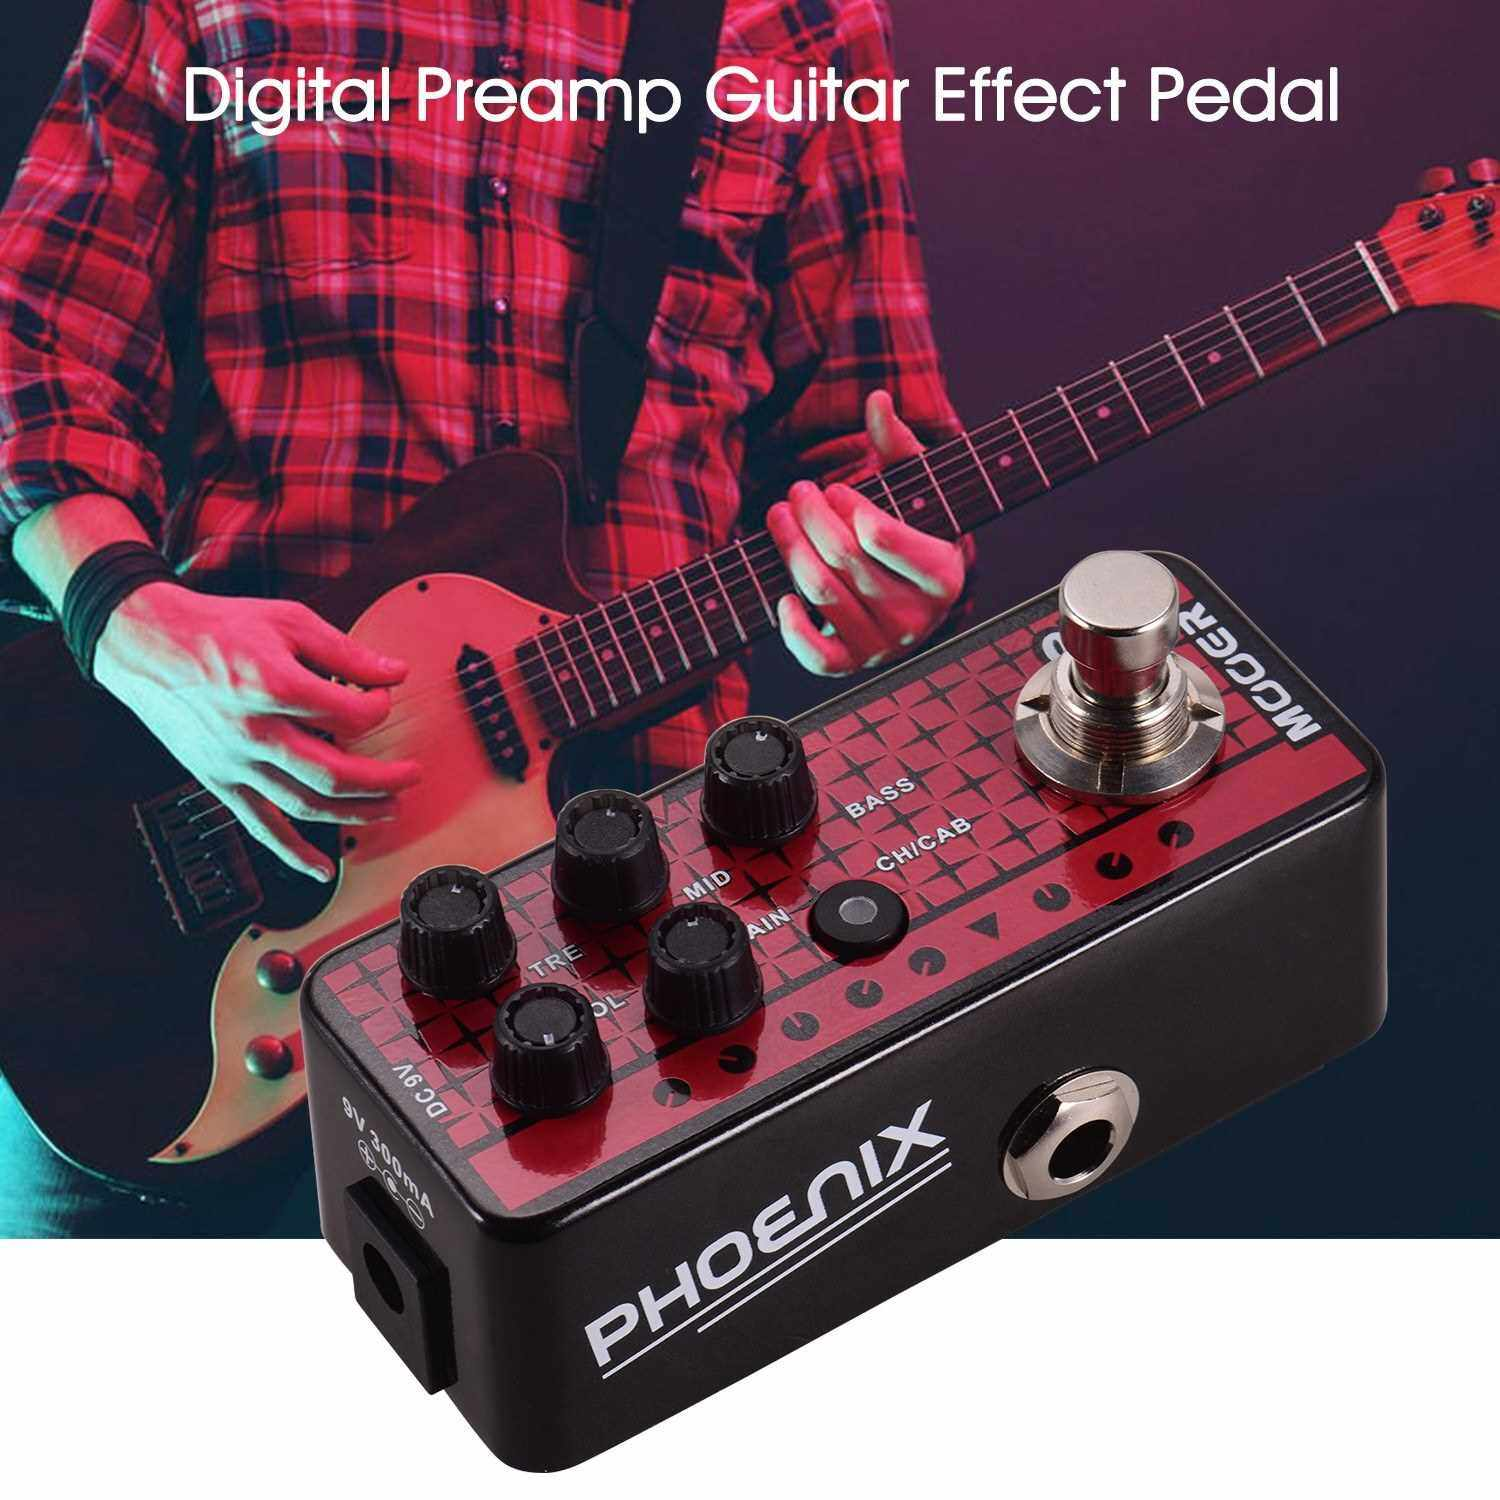 Best Selling Mooer MICRO PREAMP Series 016 PHOENIX Digital Preamp Preamplifier Guitar Effect Pedal Cabinet Simulation Dual Channels 3-Band EQ with True Bypass (Standard)